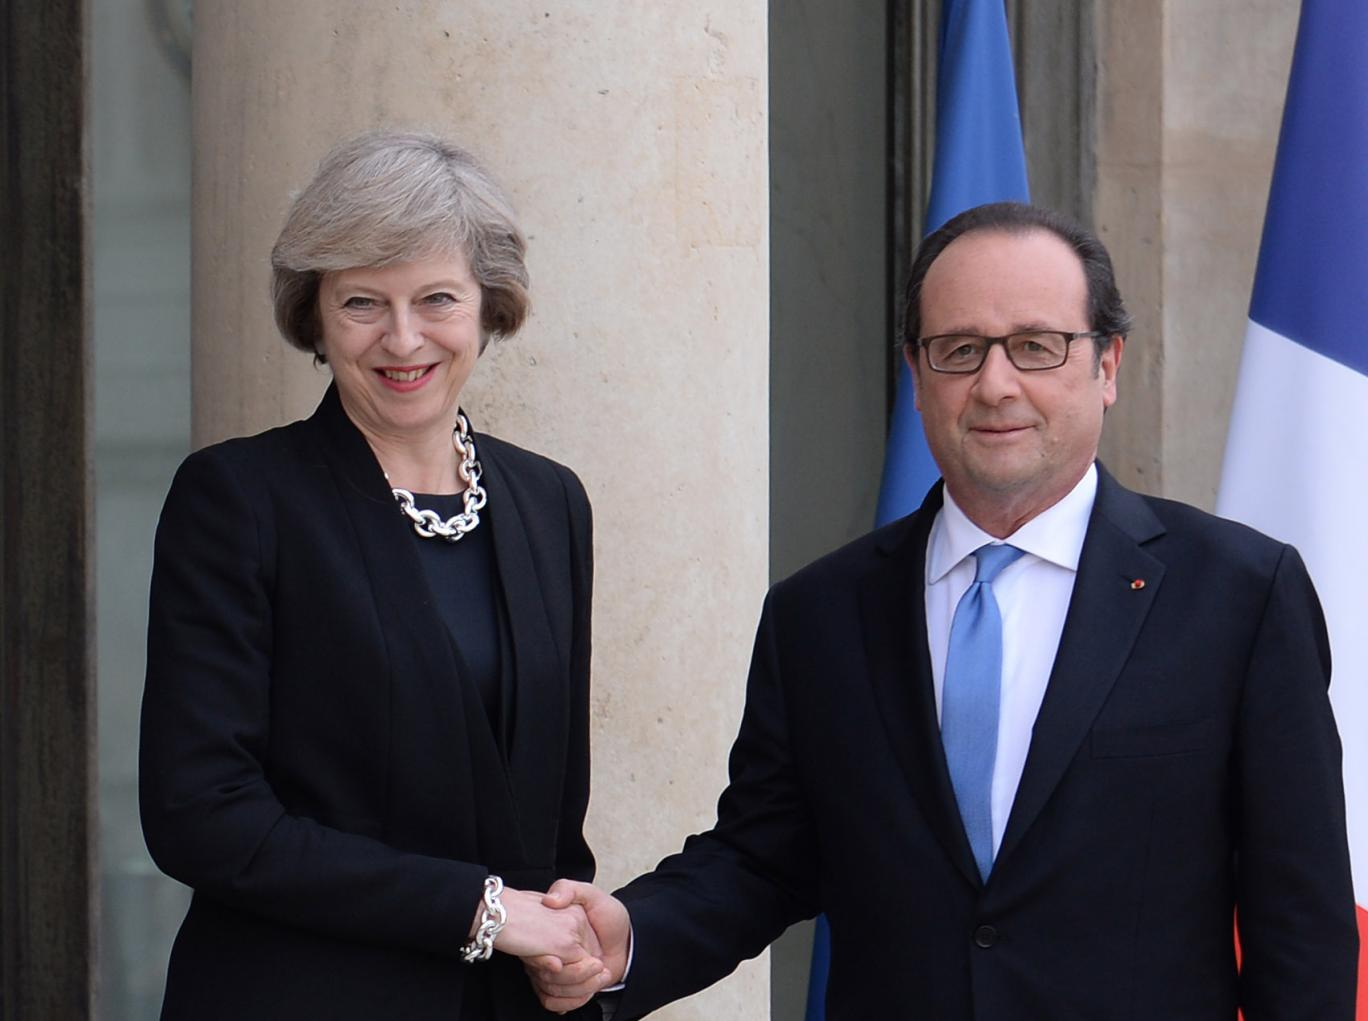 France set conditions for Britain to access EU common market